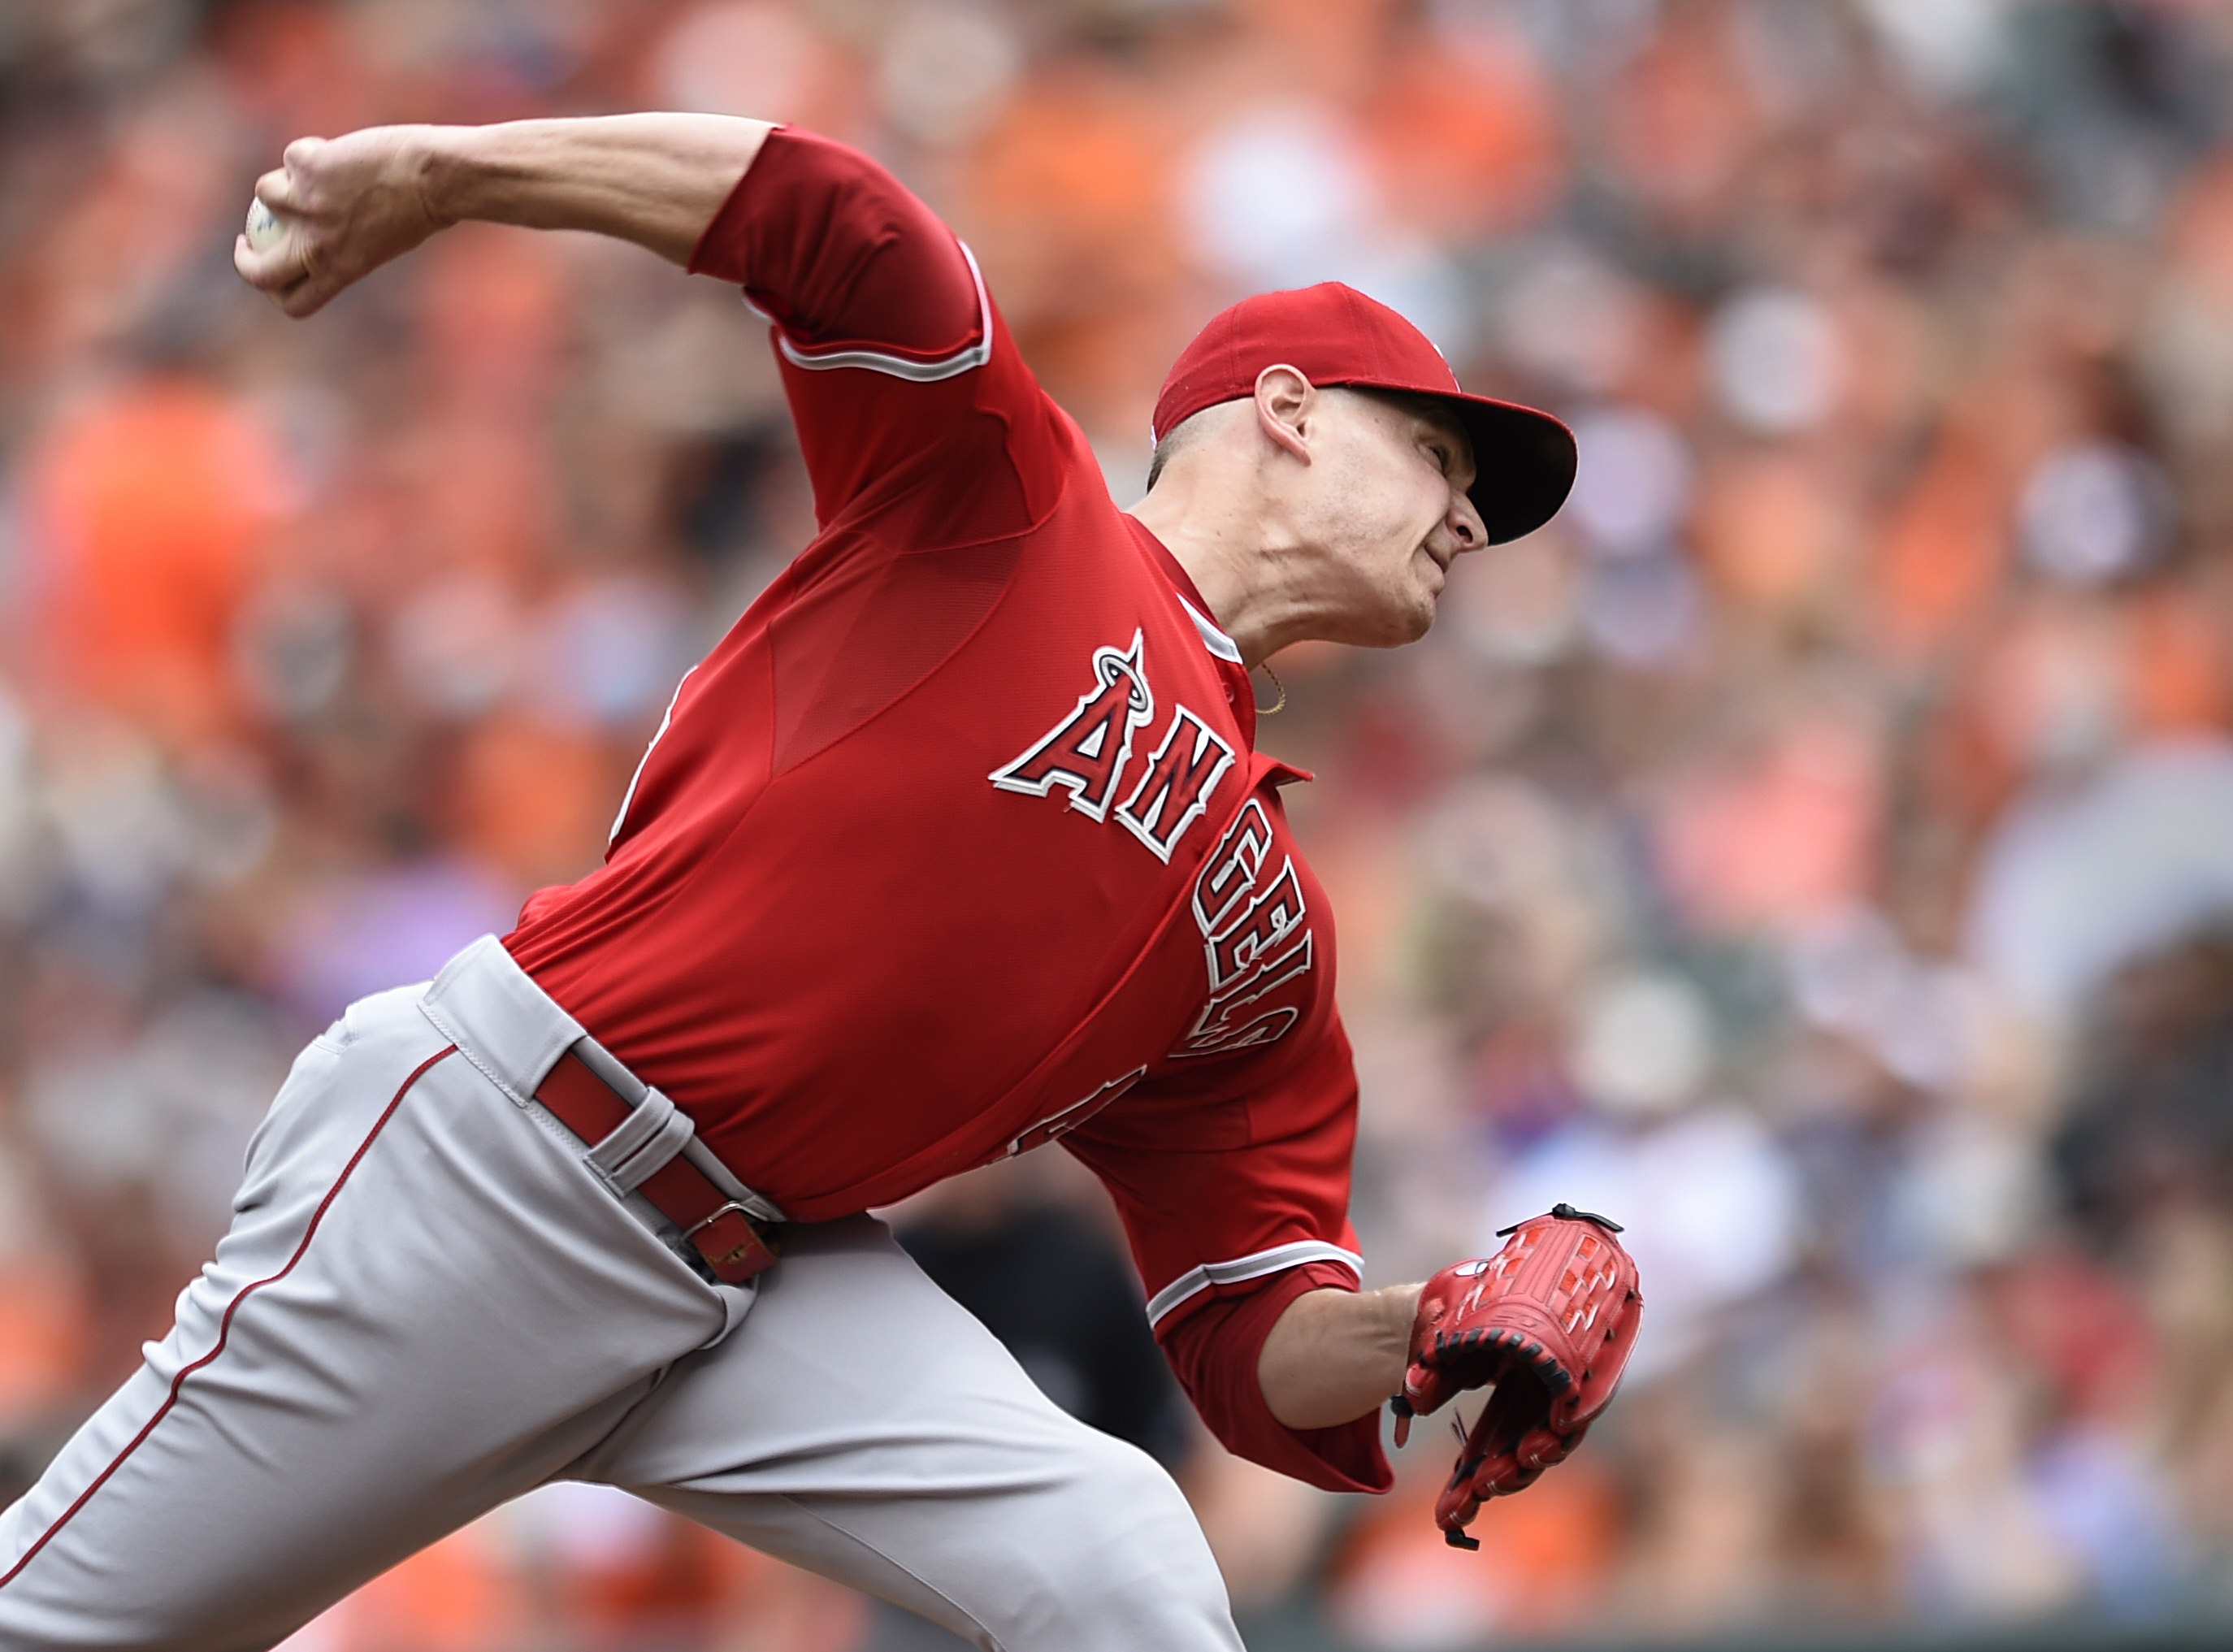 Los Angeles Angels starting pitcher Garrett Richards throws against the Baltimore Orioles in the first inning of a baseball game Sunday, May 17, 2015, in Baltimore. (AP Photo/Gail Burton)